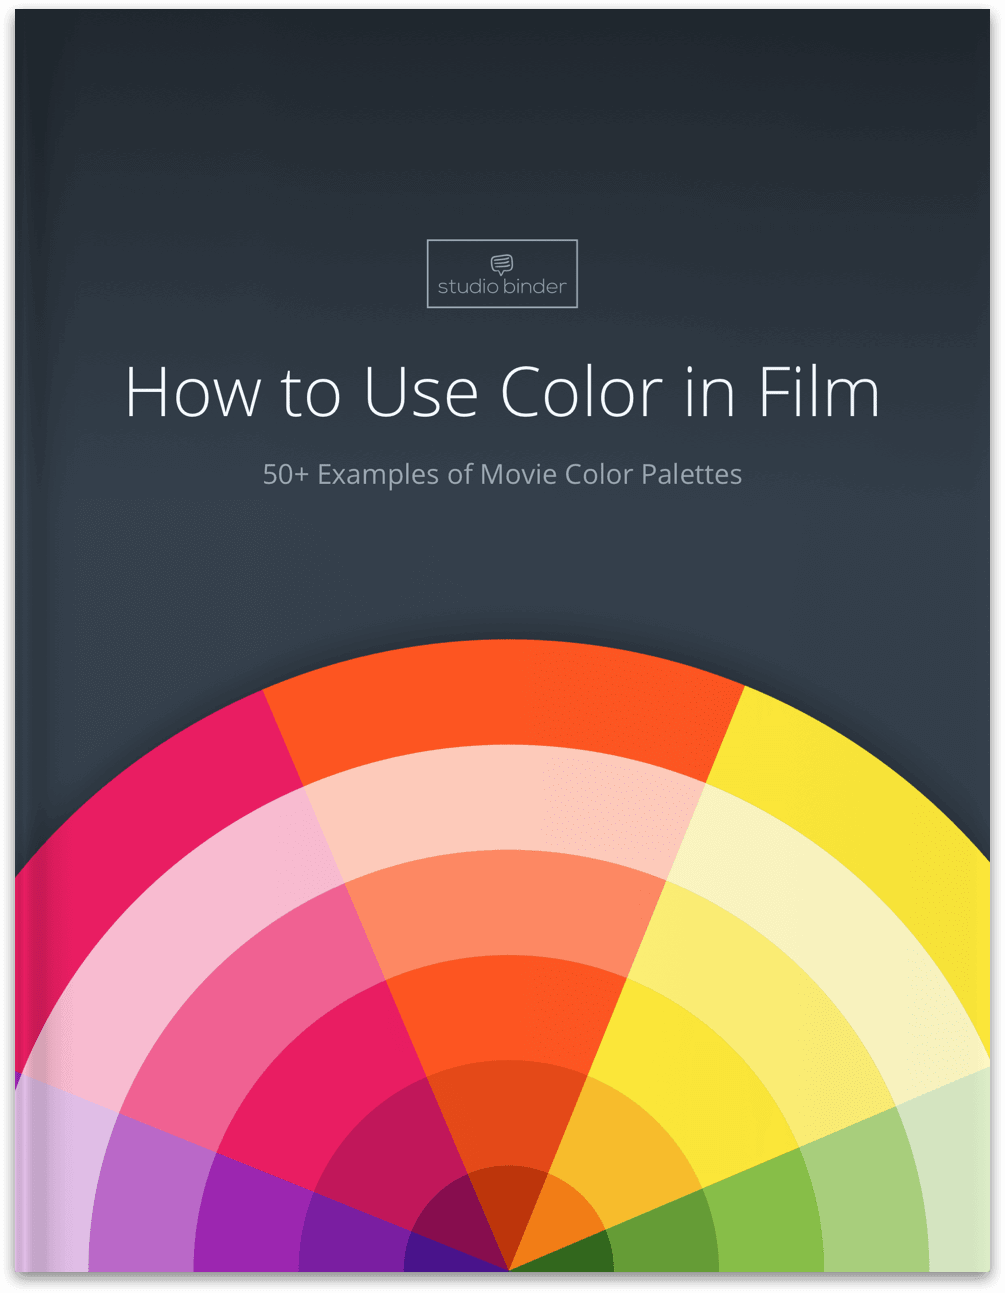 Color in Film: Over 50+ Movie Color Palettes (FREE Ebook)